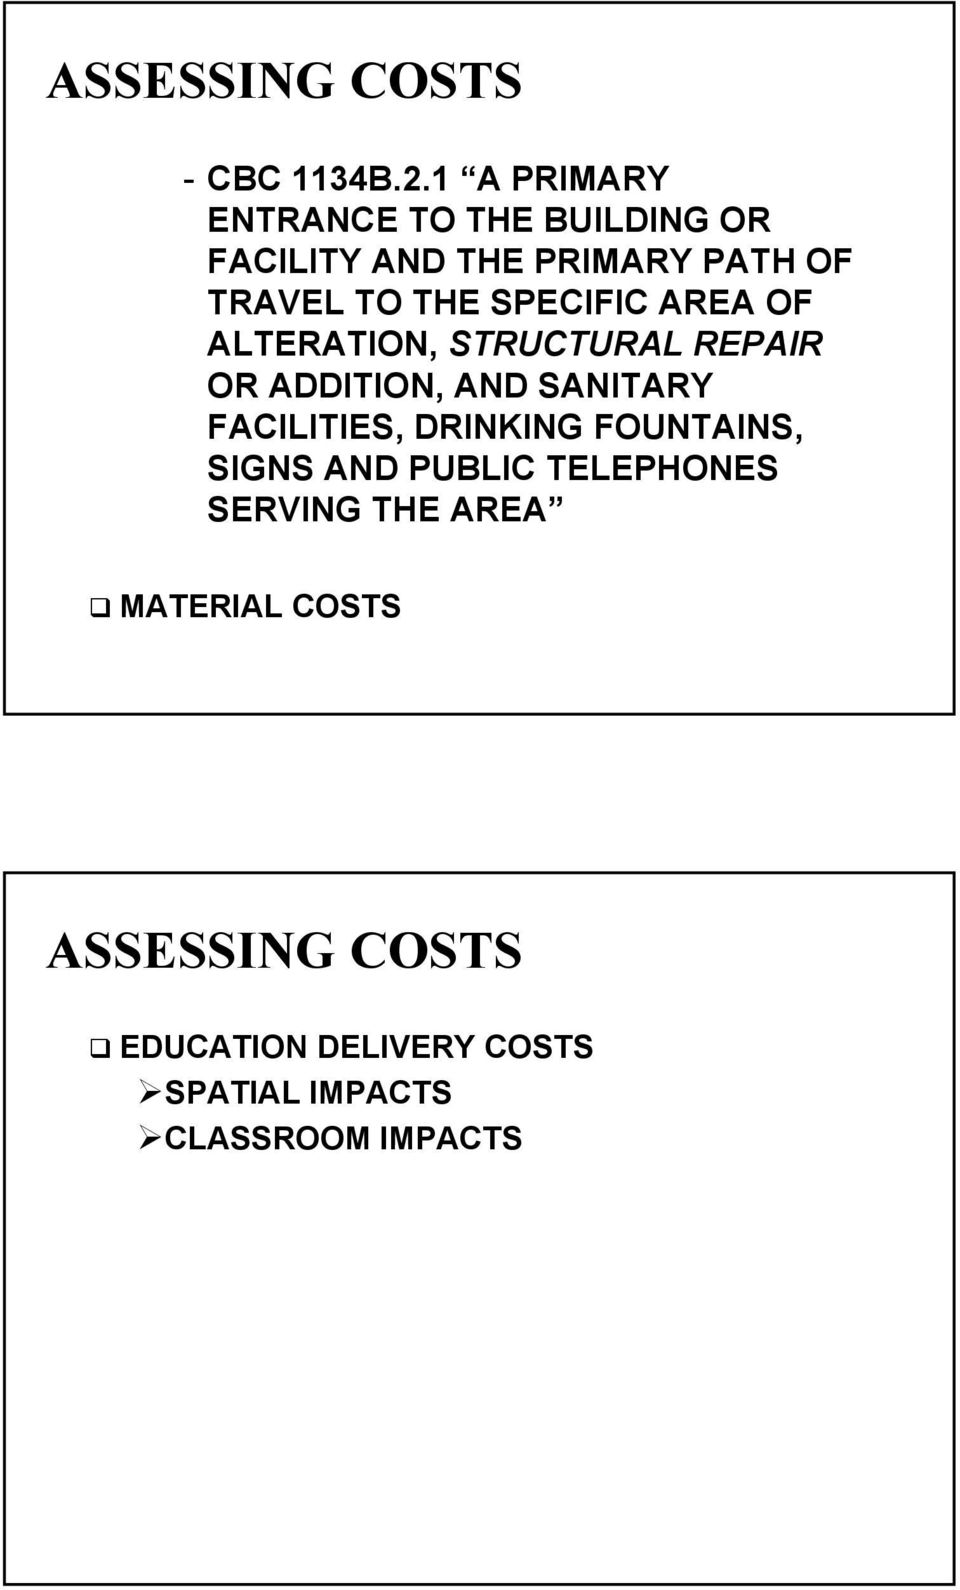 SPECIFIC AREA OF ALTERATION, STRUCTURAL REPAIR OR ADDITION, AND SANITARY FACILITIES,